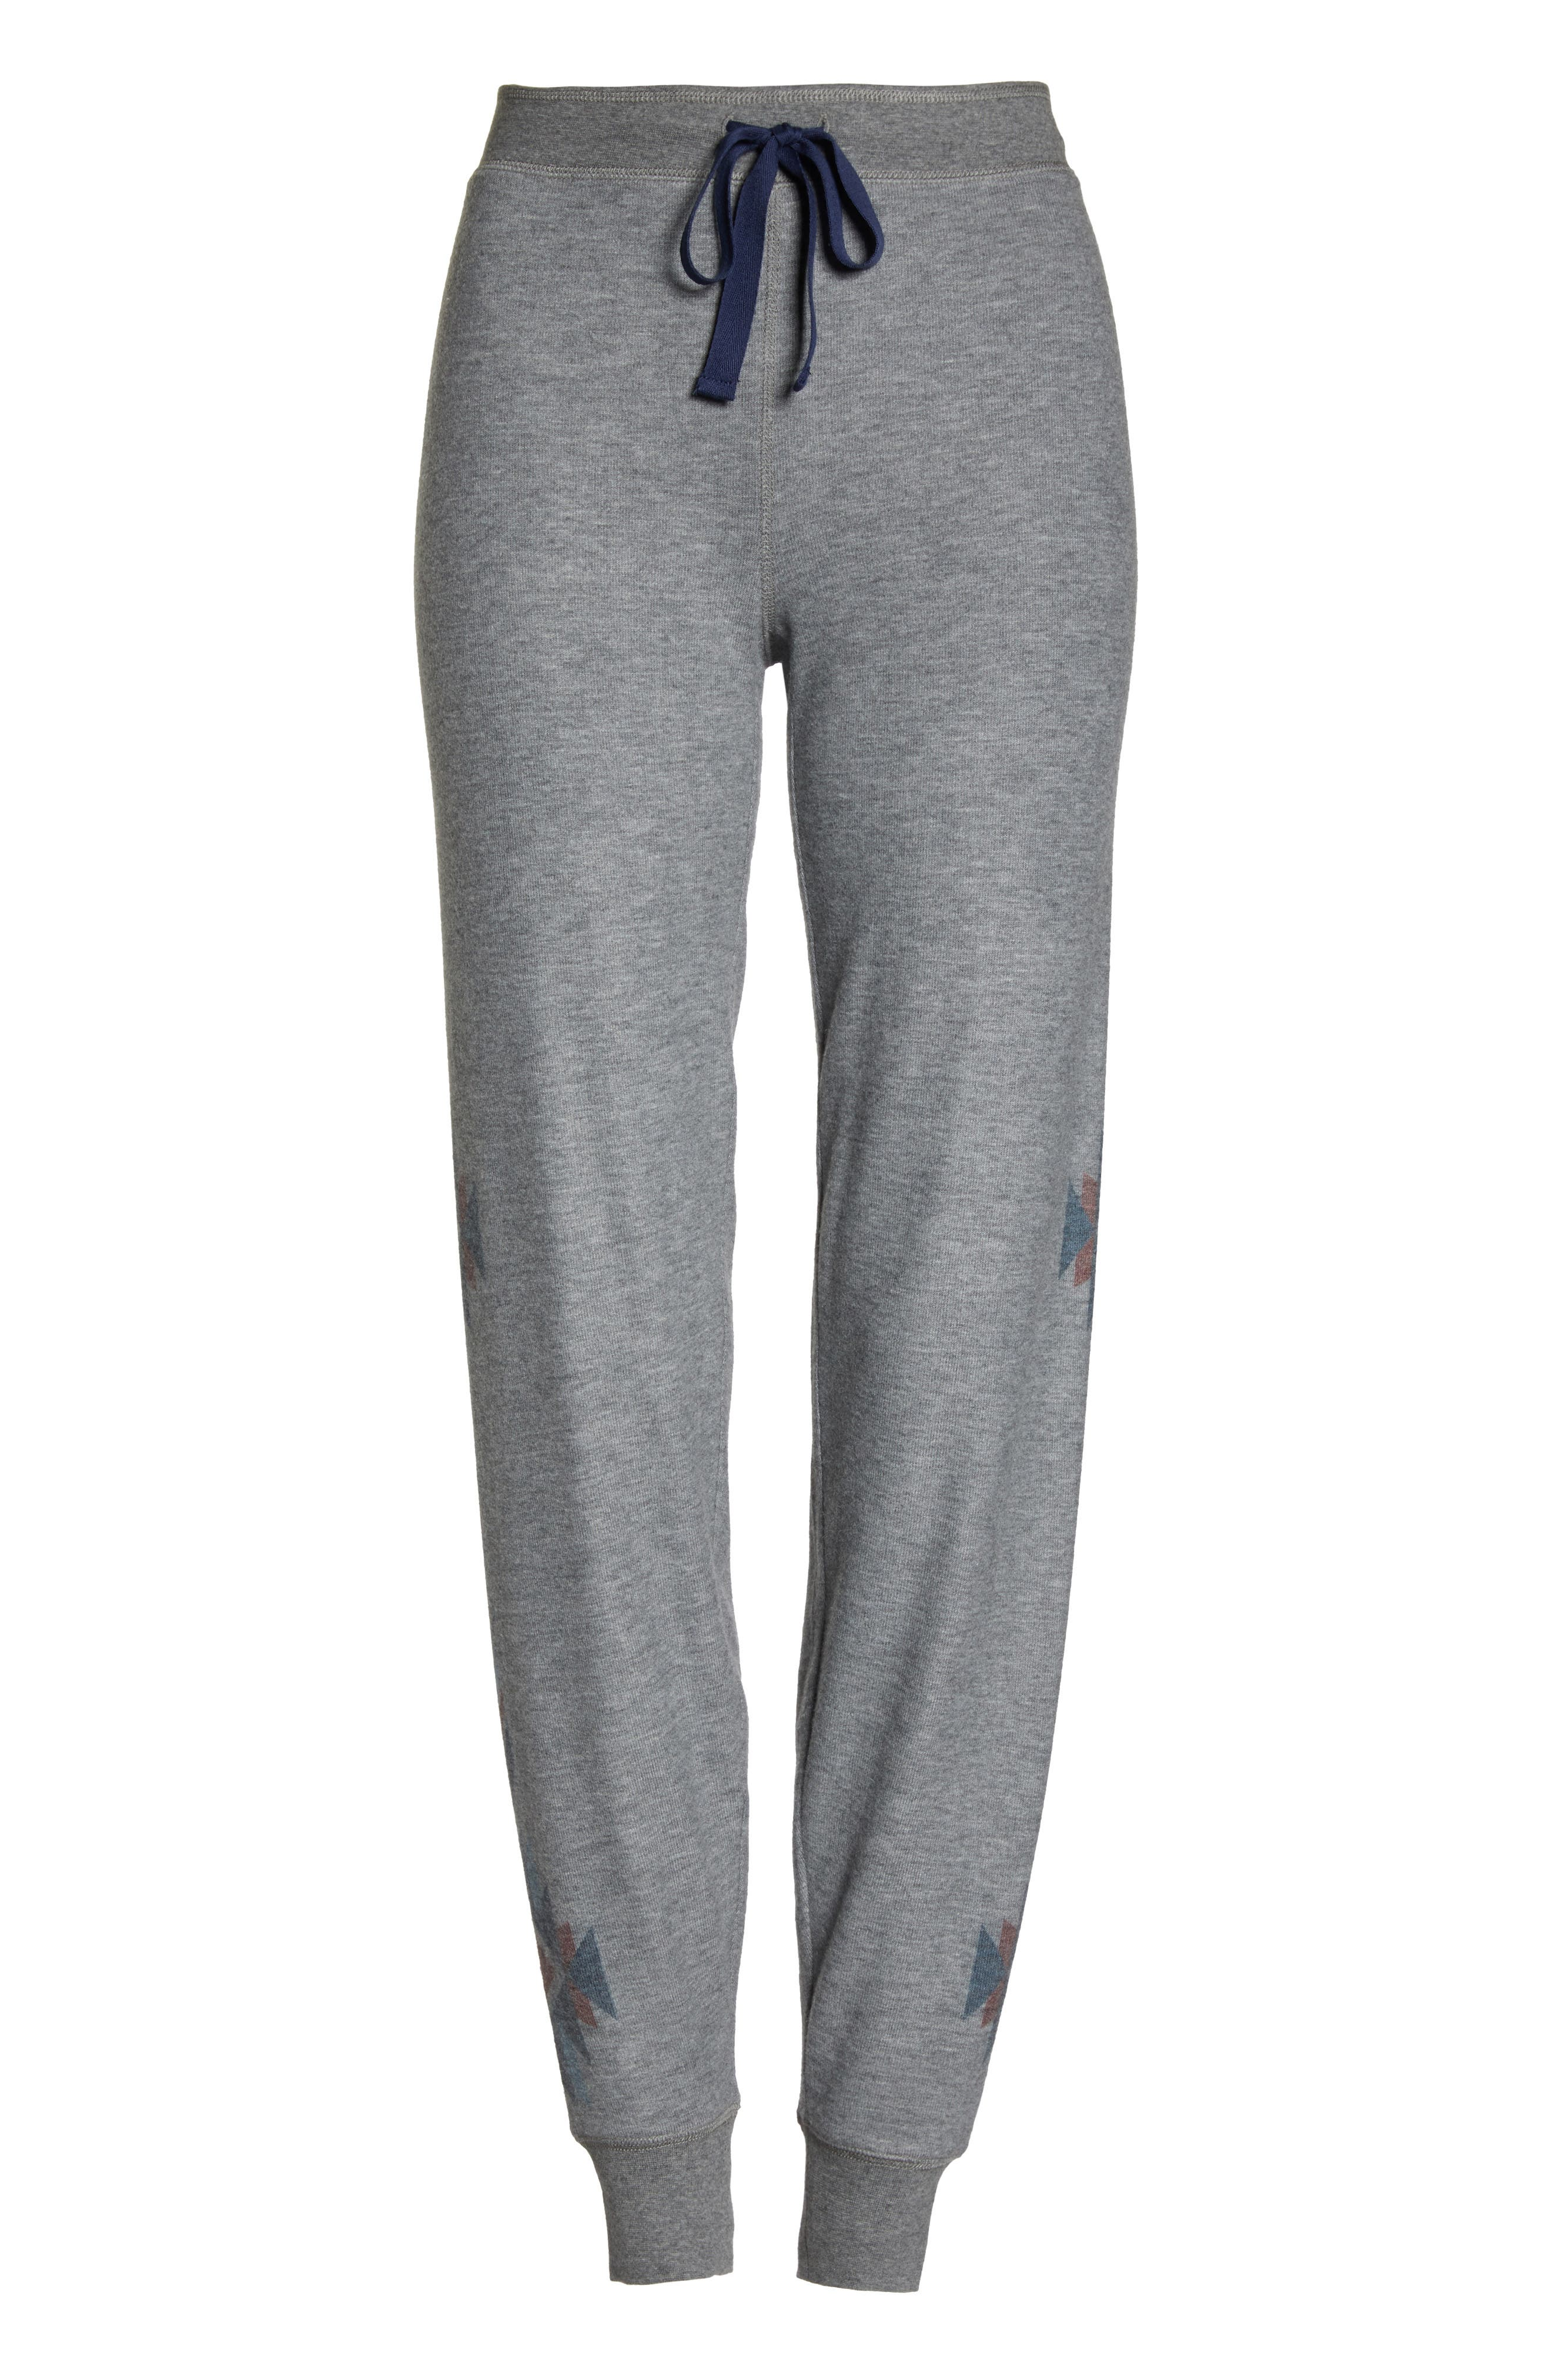 Winter Escape Jogger Pants,                             Alternate thumbnail 7, color,                             H GREY